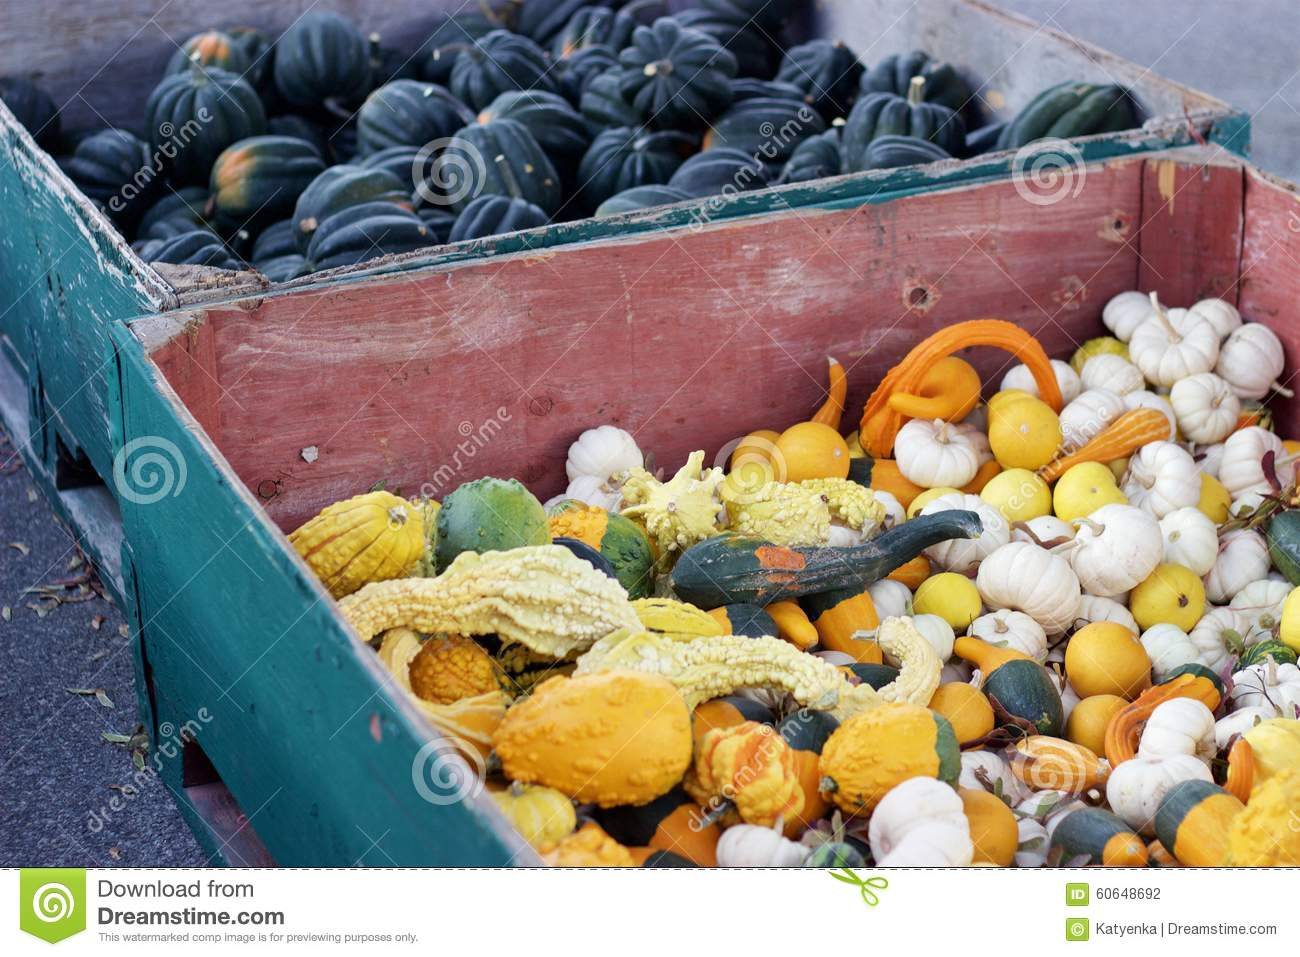 Bins Of Acorn Squash White Pumpkins Decorative Gourds For Sale